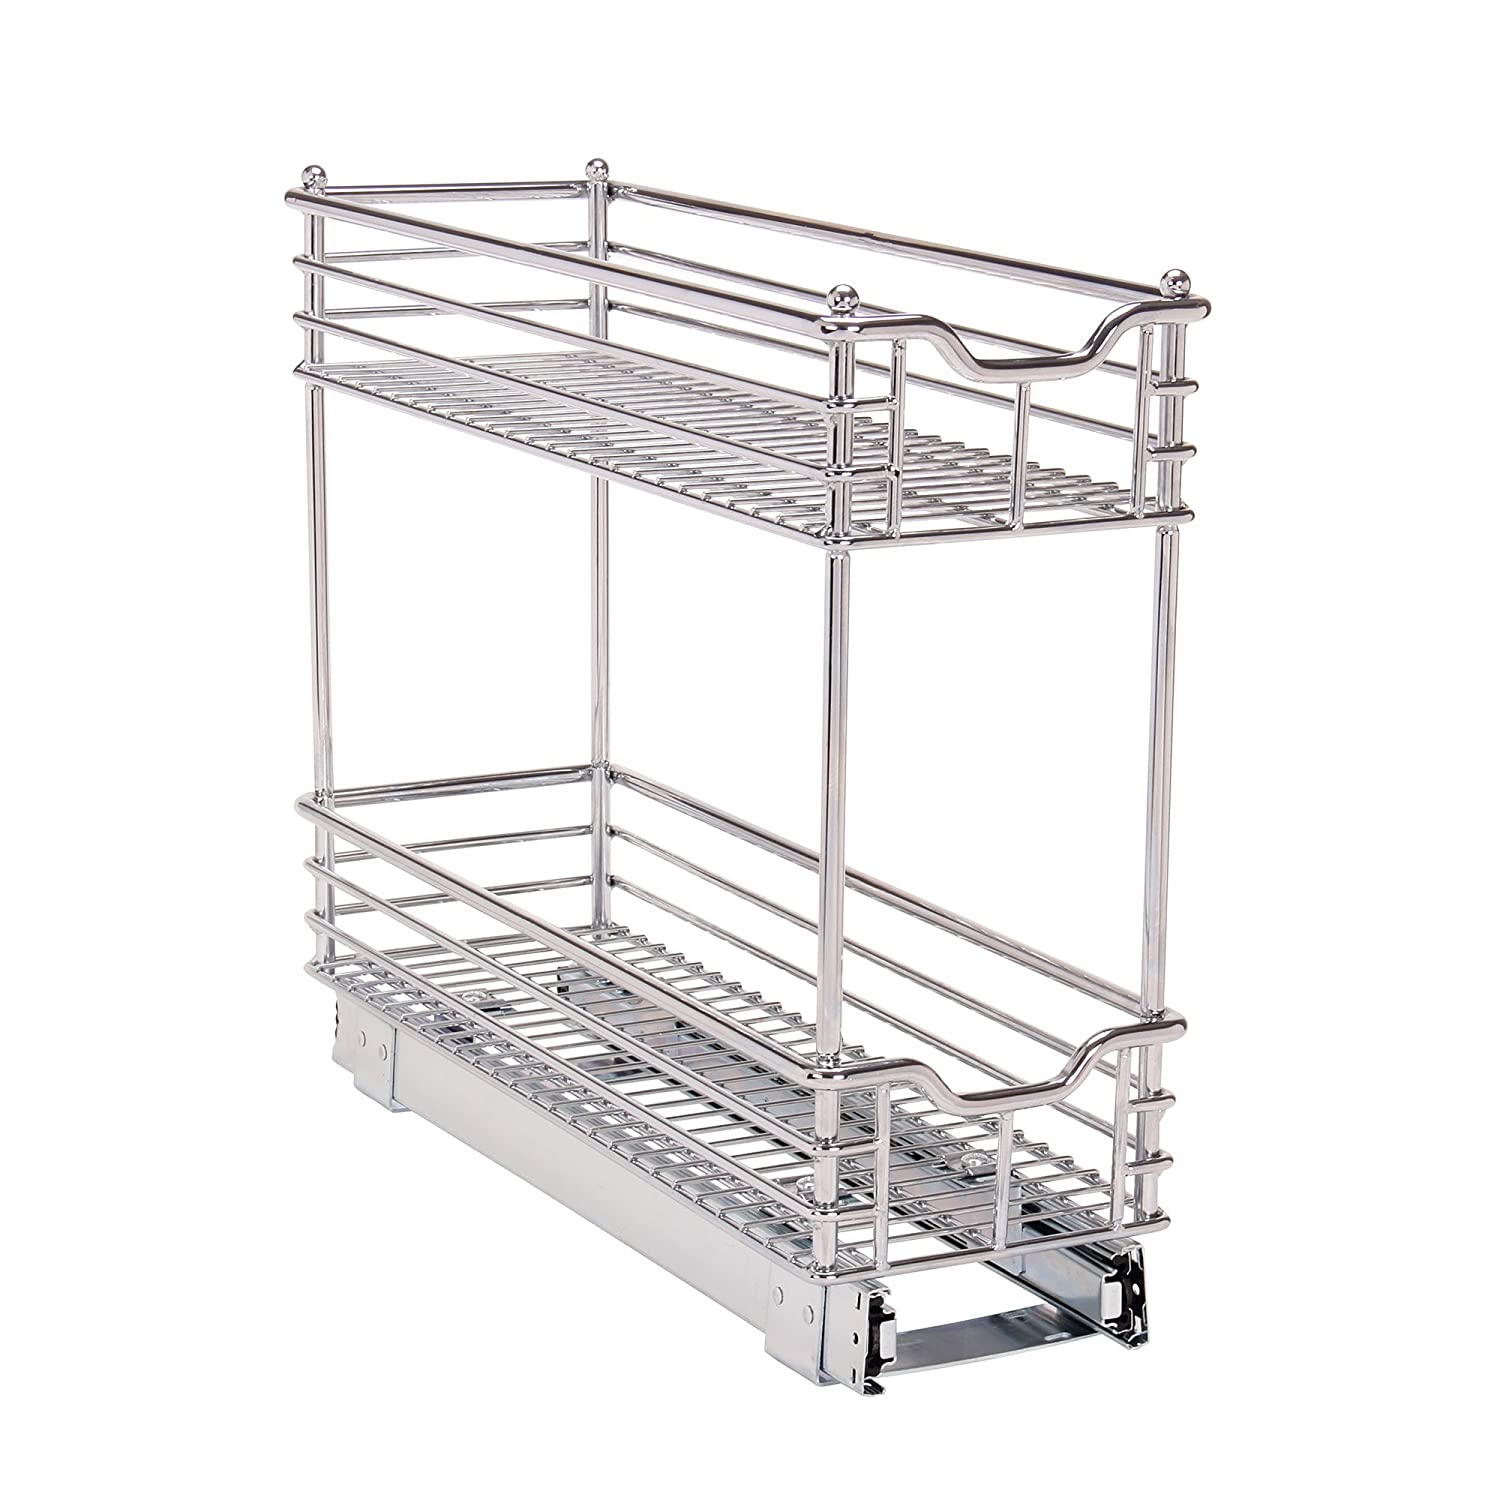 Household Essentials Glides Narrow Sliding Organizer, 5-Inch, Chrome C20521-1